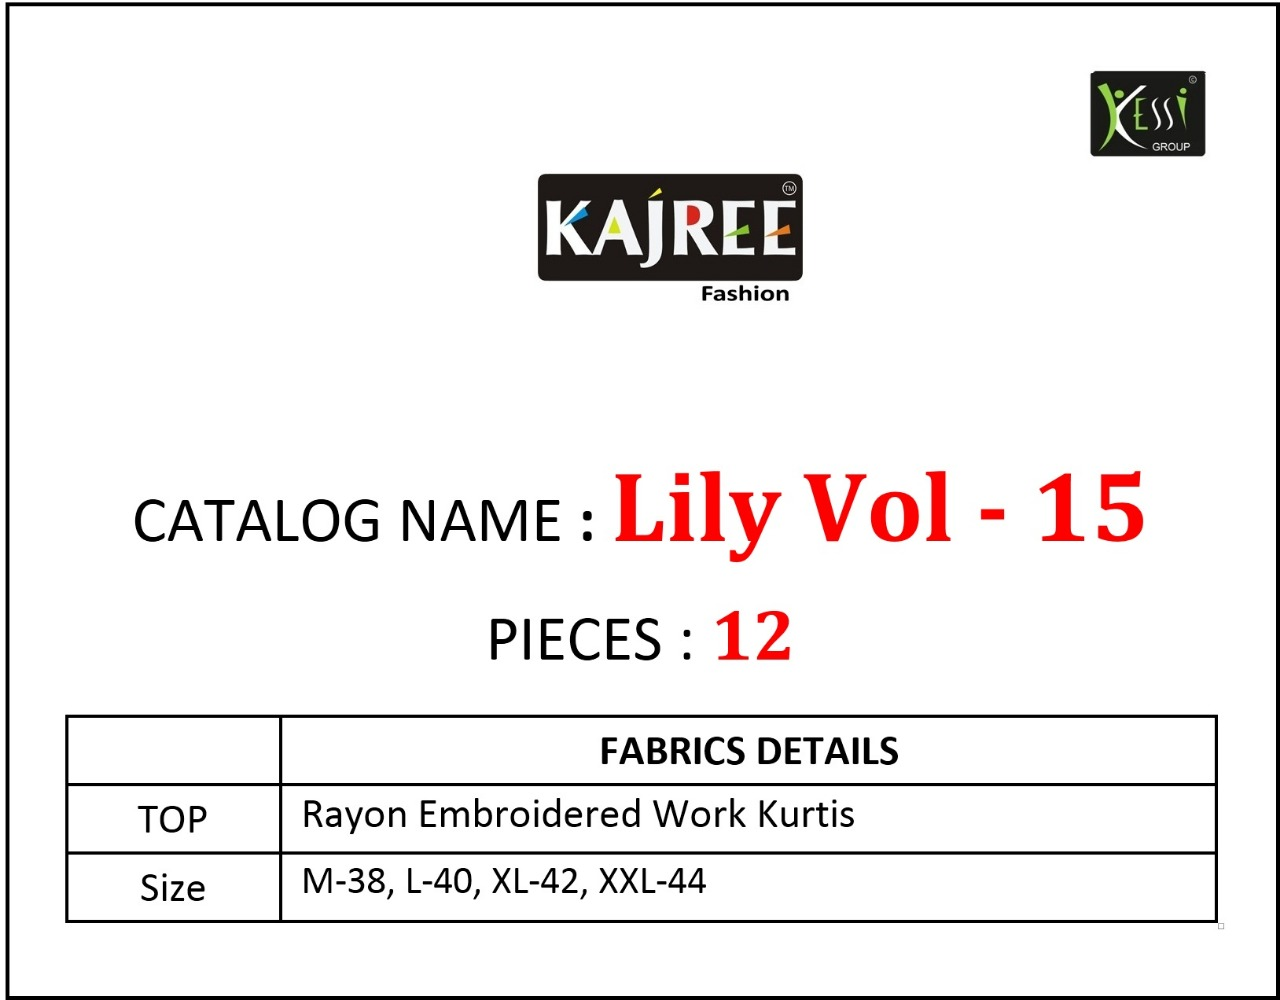 Kajree Lily Vol 15 Kurti Wholesale Catalog 12 Pcs 15 - Kajree Lily Vol 15 Kurti Wholesale Catalog 12 Pcs